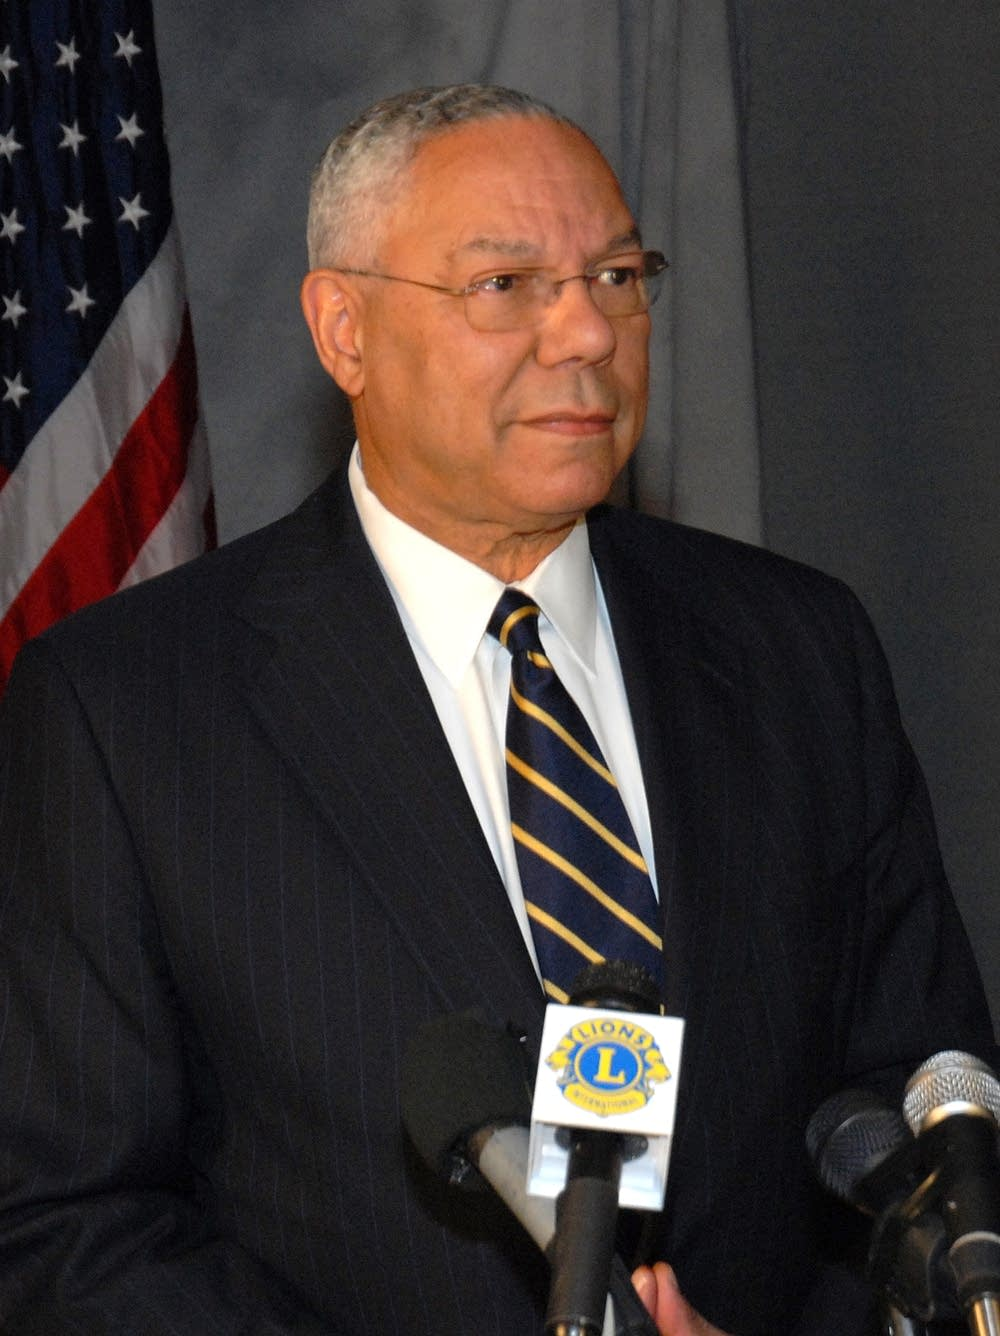 Colin Powell speaks to Lions Club members